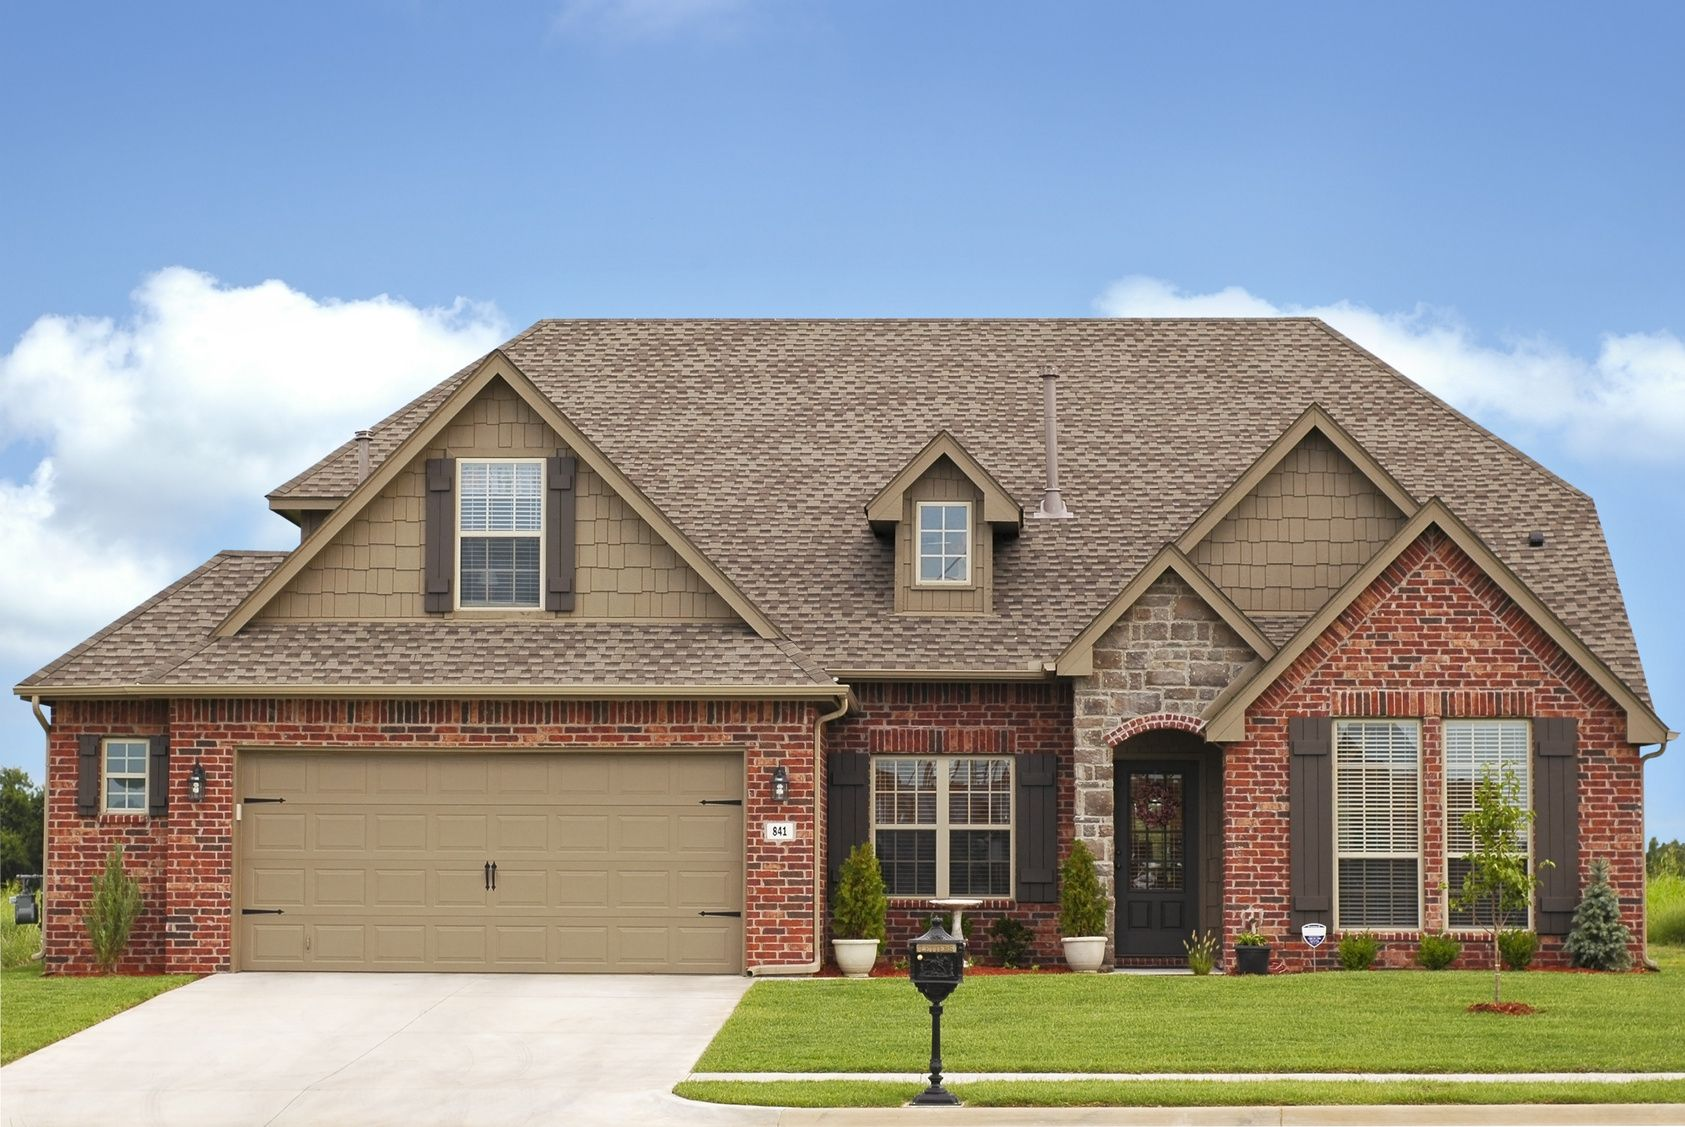 Two Story Brick House Designs 430 Two Story Brick House Design